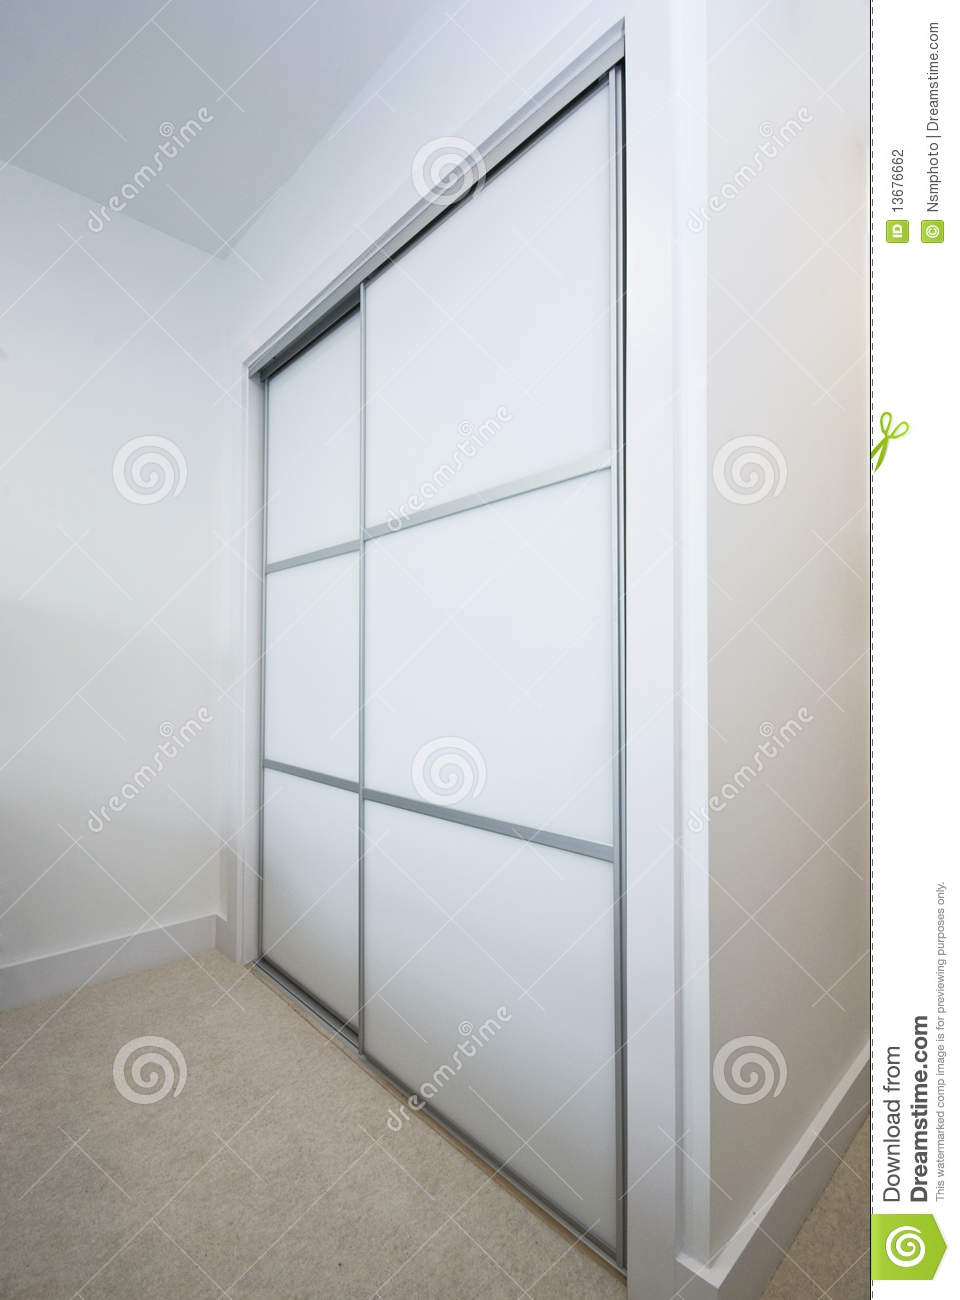 Large Built In Wardrobe Stock Photography Image 13676662